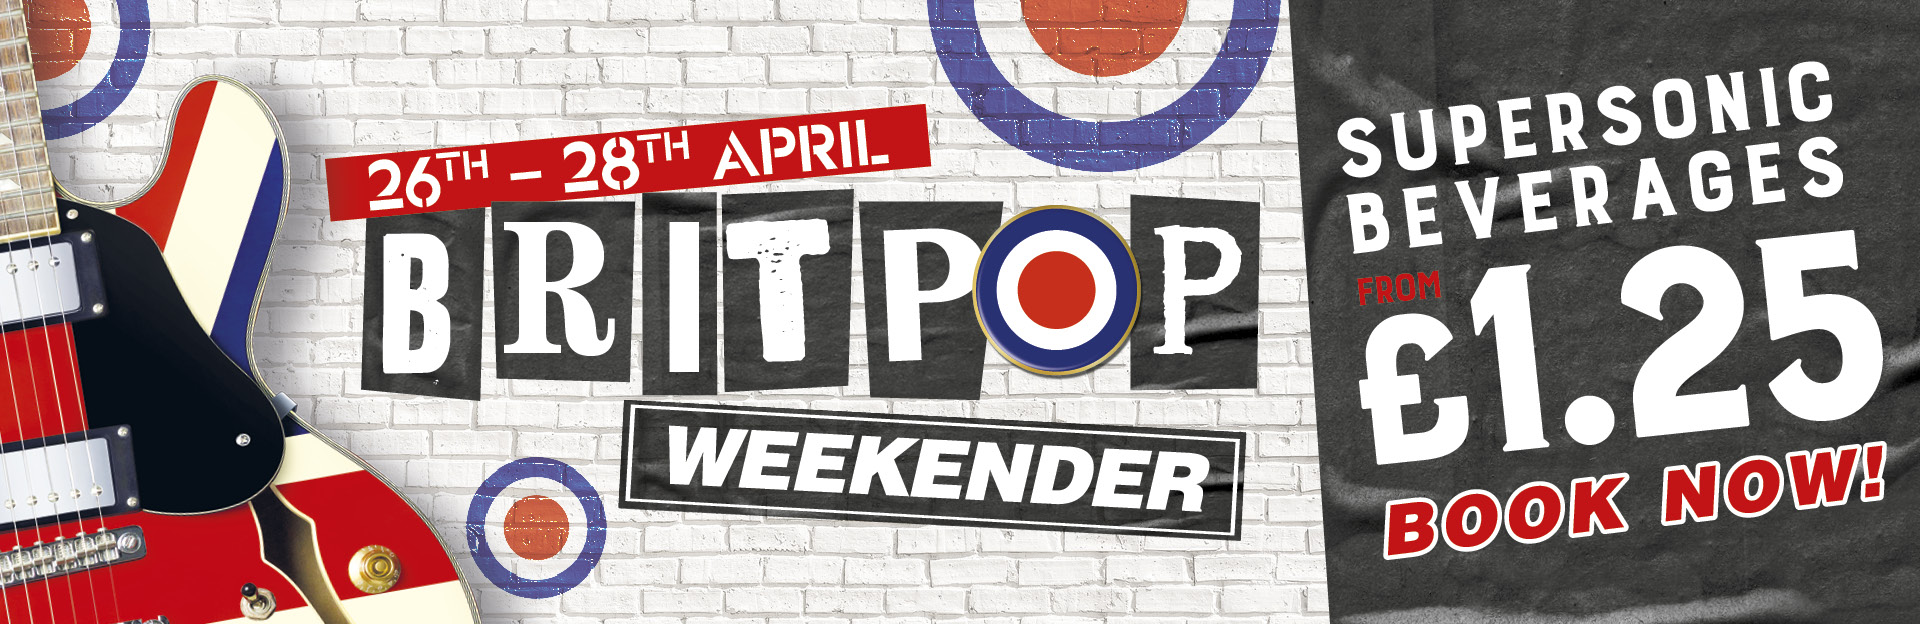 Britpop Weekender at The Hole in the Wall